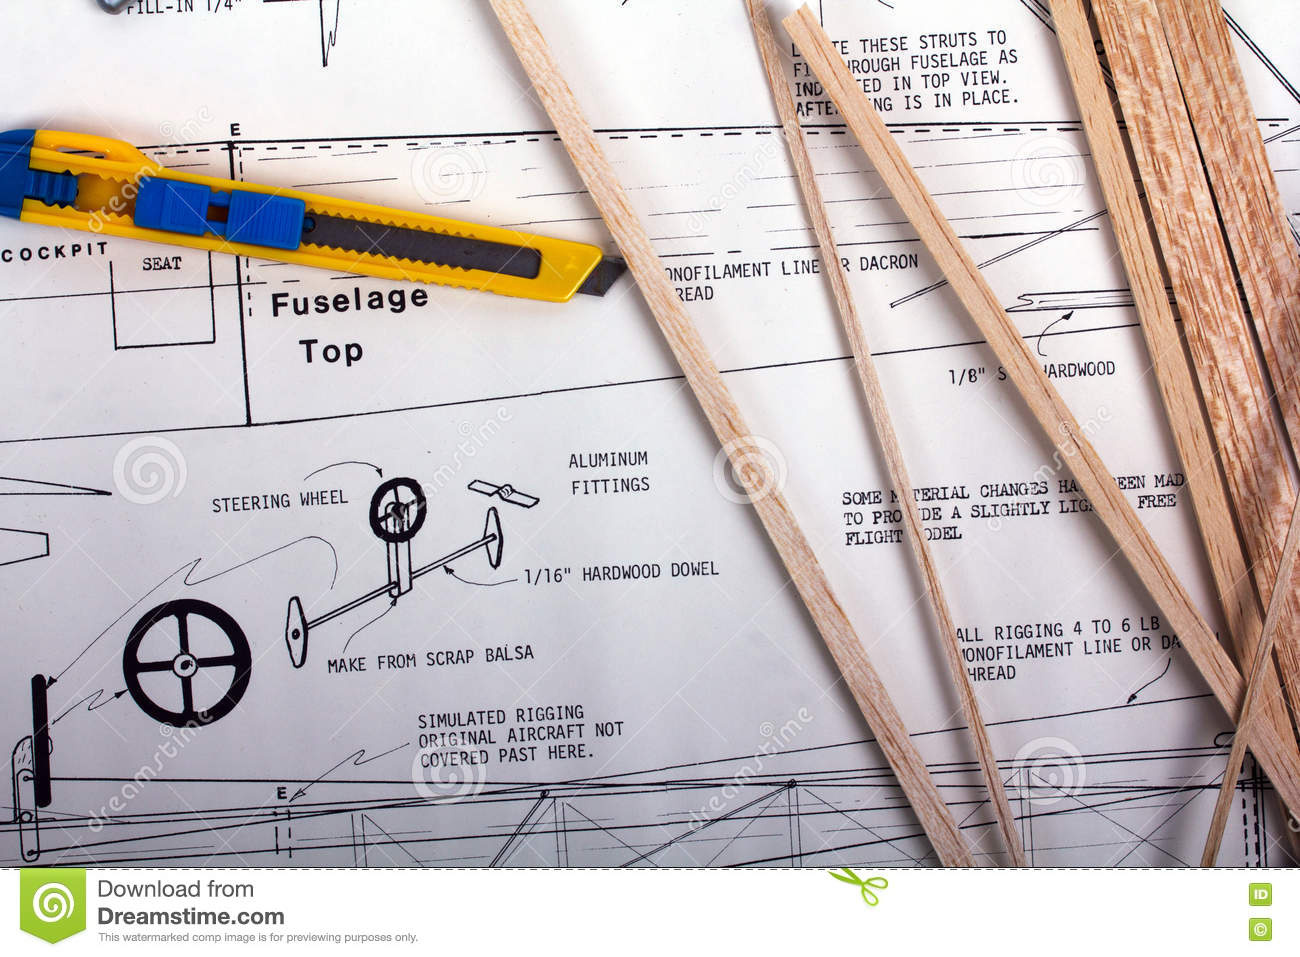 Making A Model Airplane From Balsa Wood Stock Image - Image